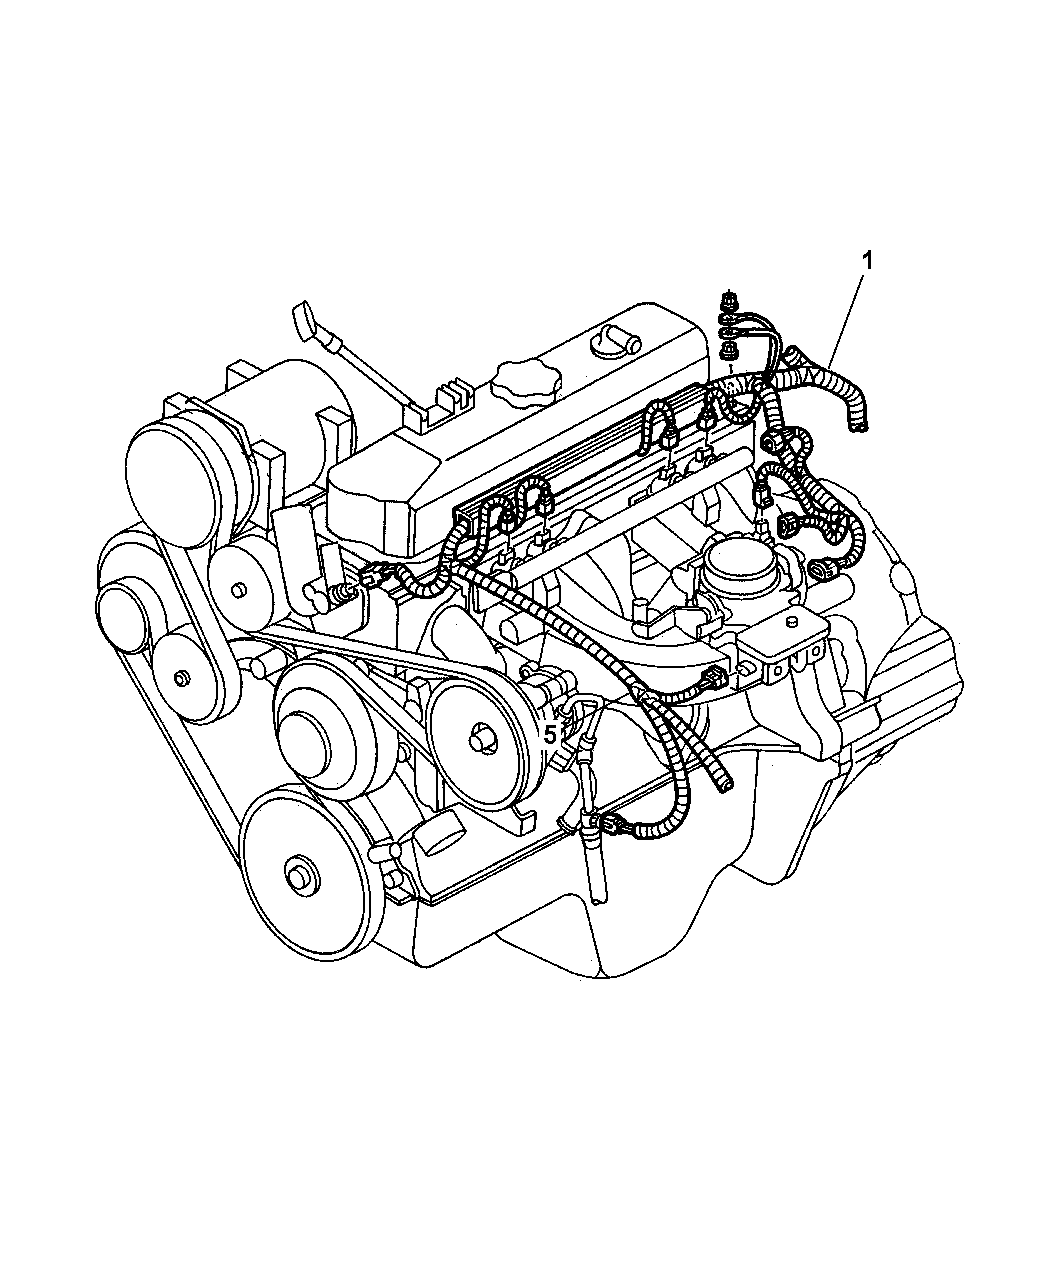 1997 dodge dakota wiring - engine